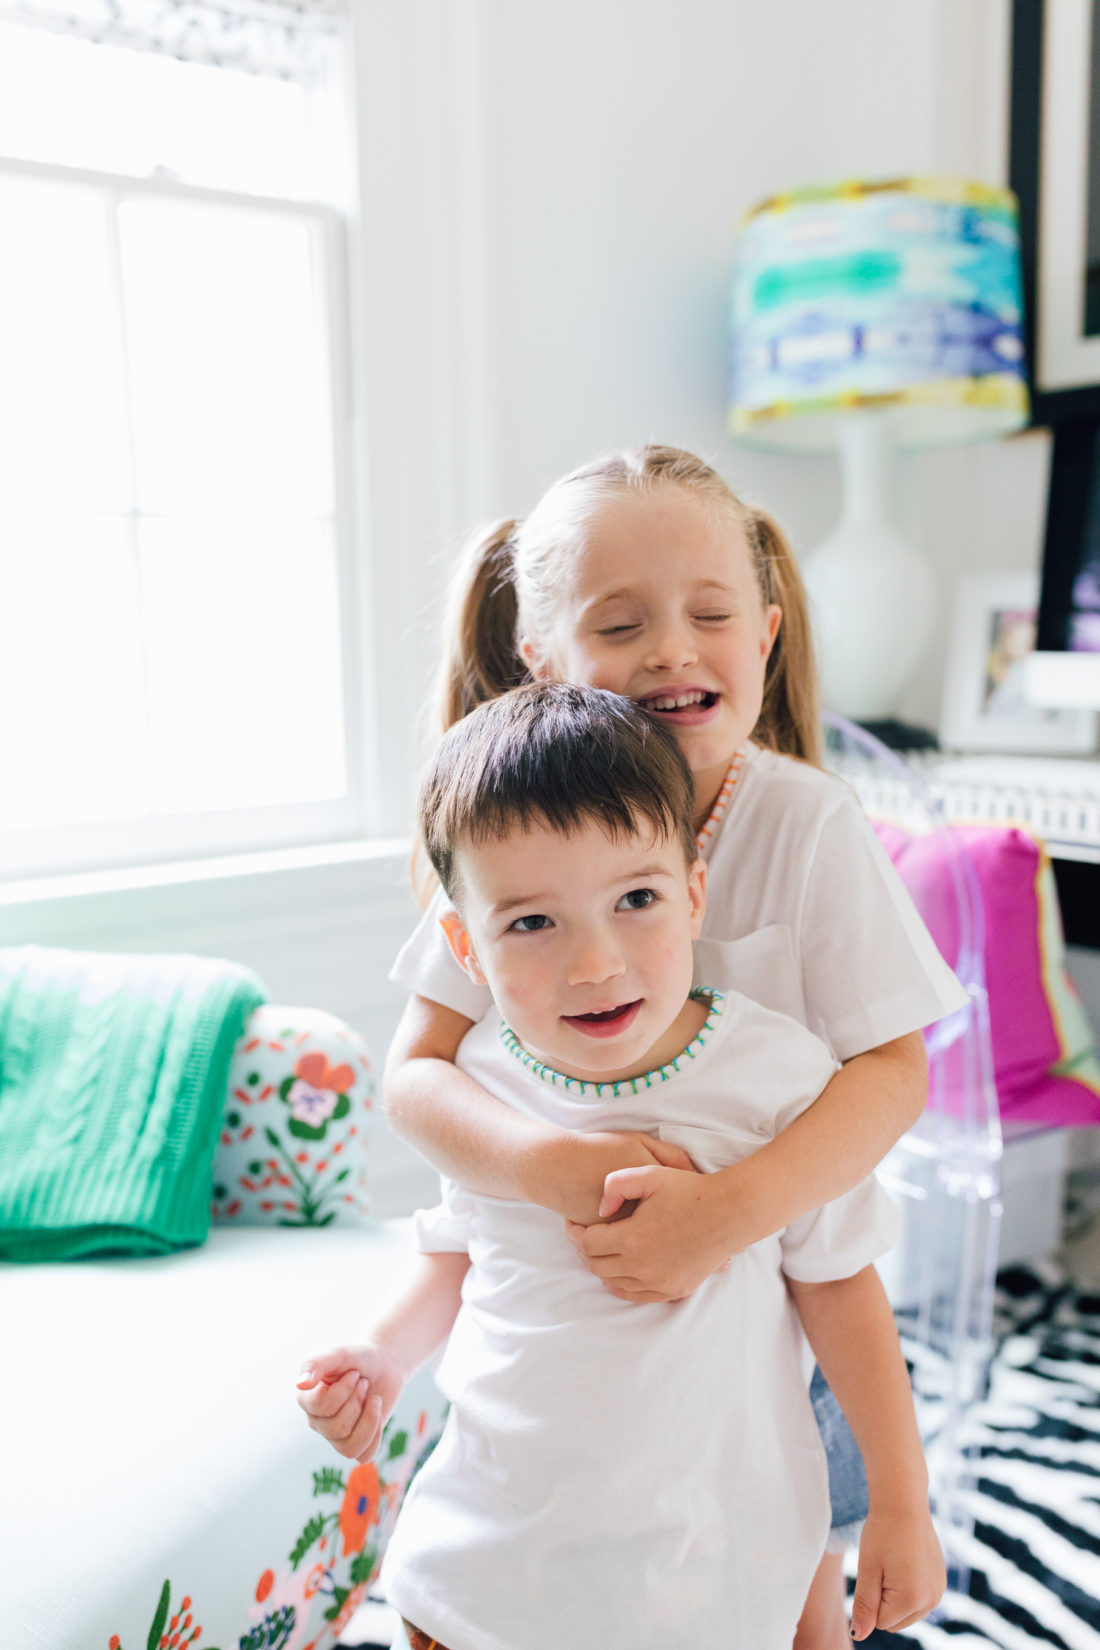 Marlowe and Major Martino hug in their embroidered tees made by mom Eva Amurri Martino